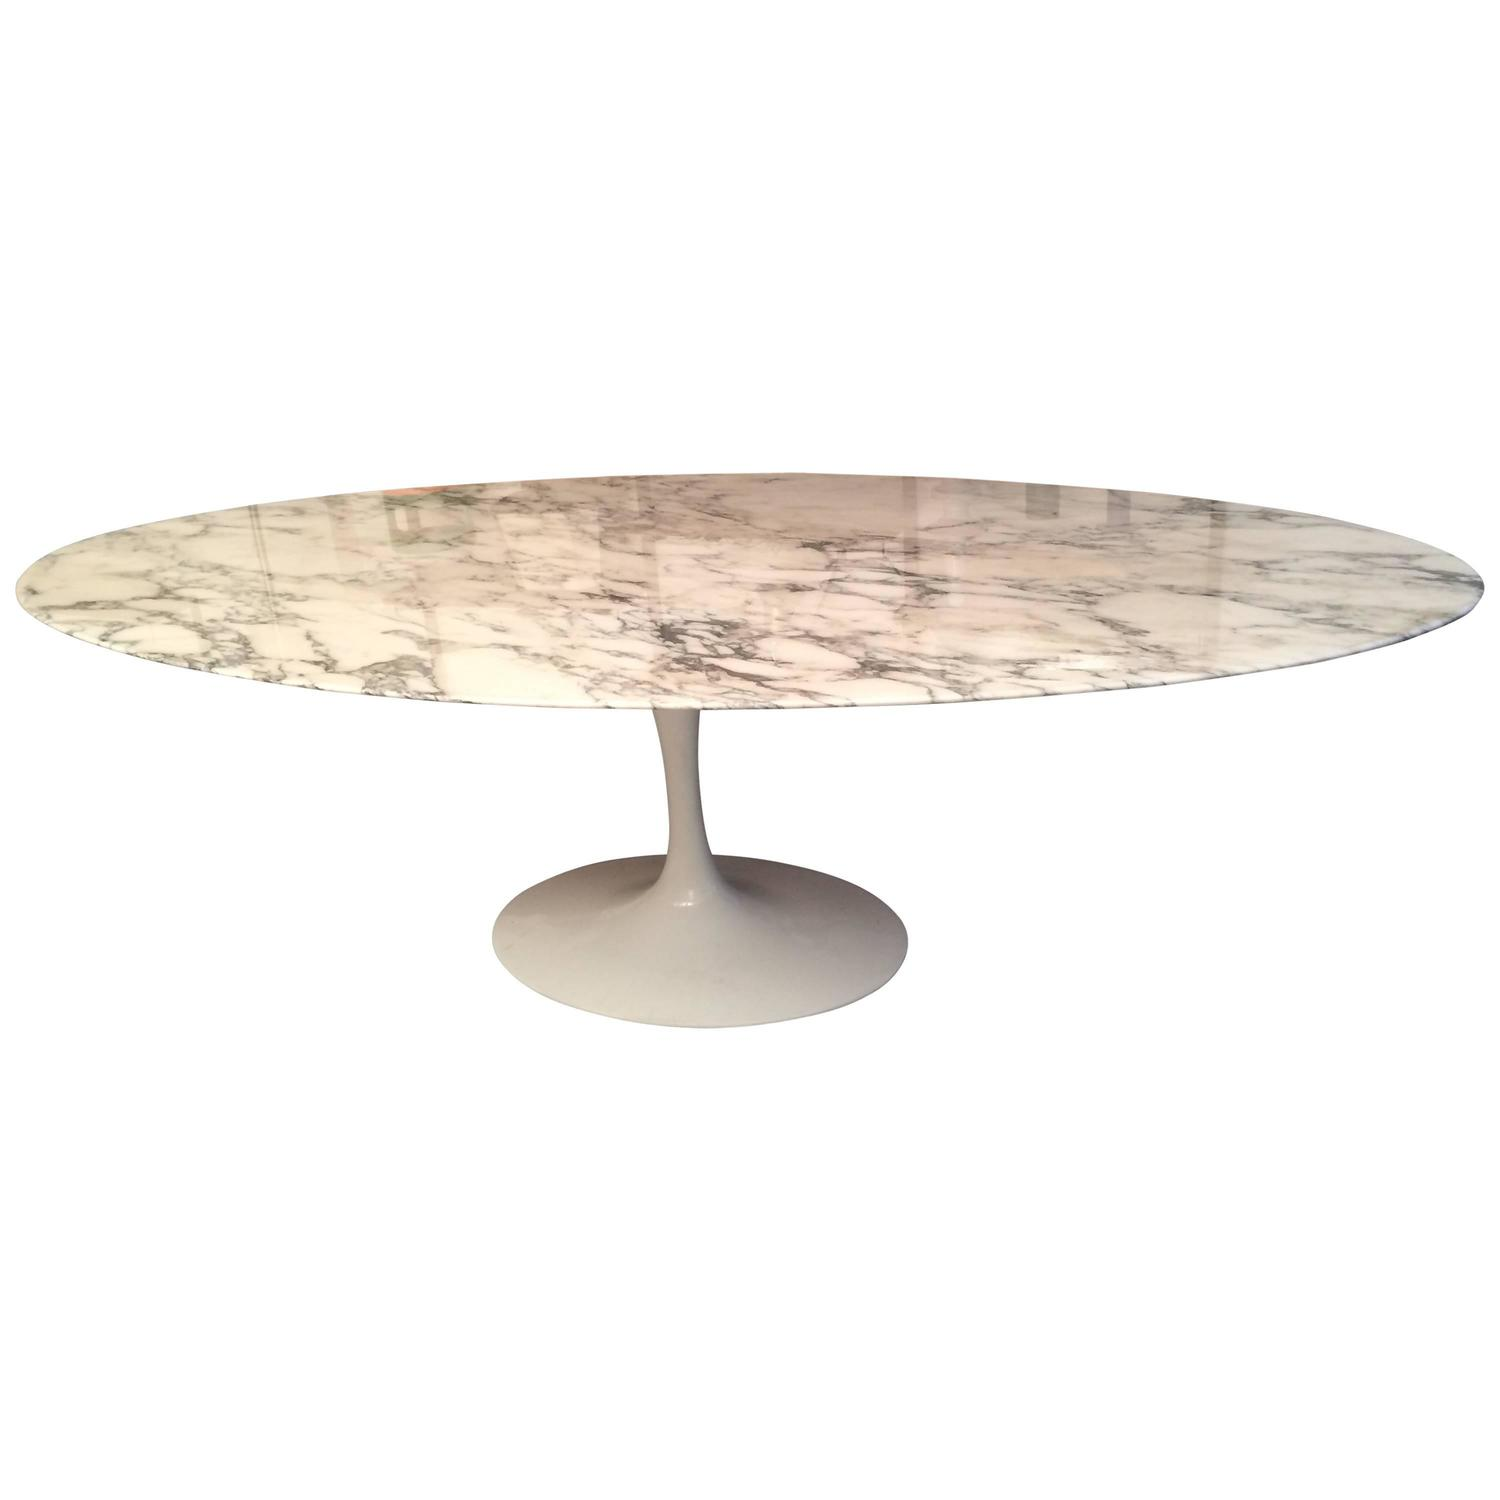 Eero Saarinen Marble Oval Dining Table At 1stdibs